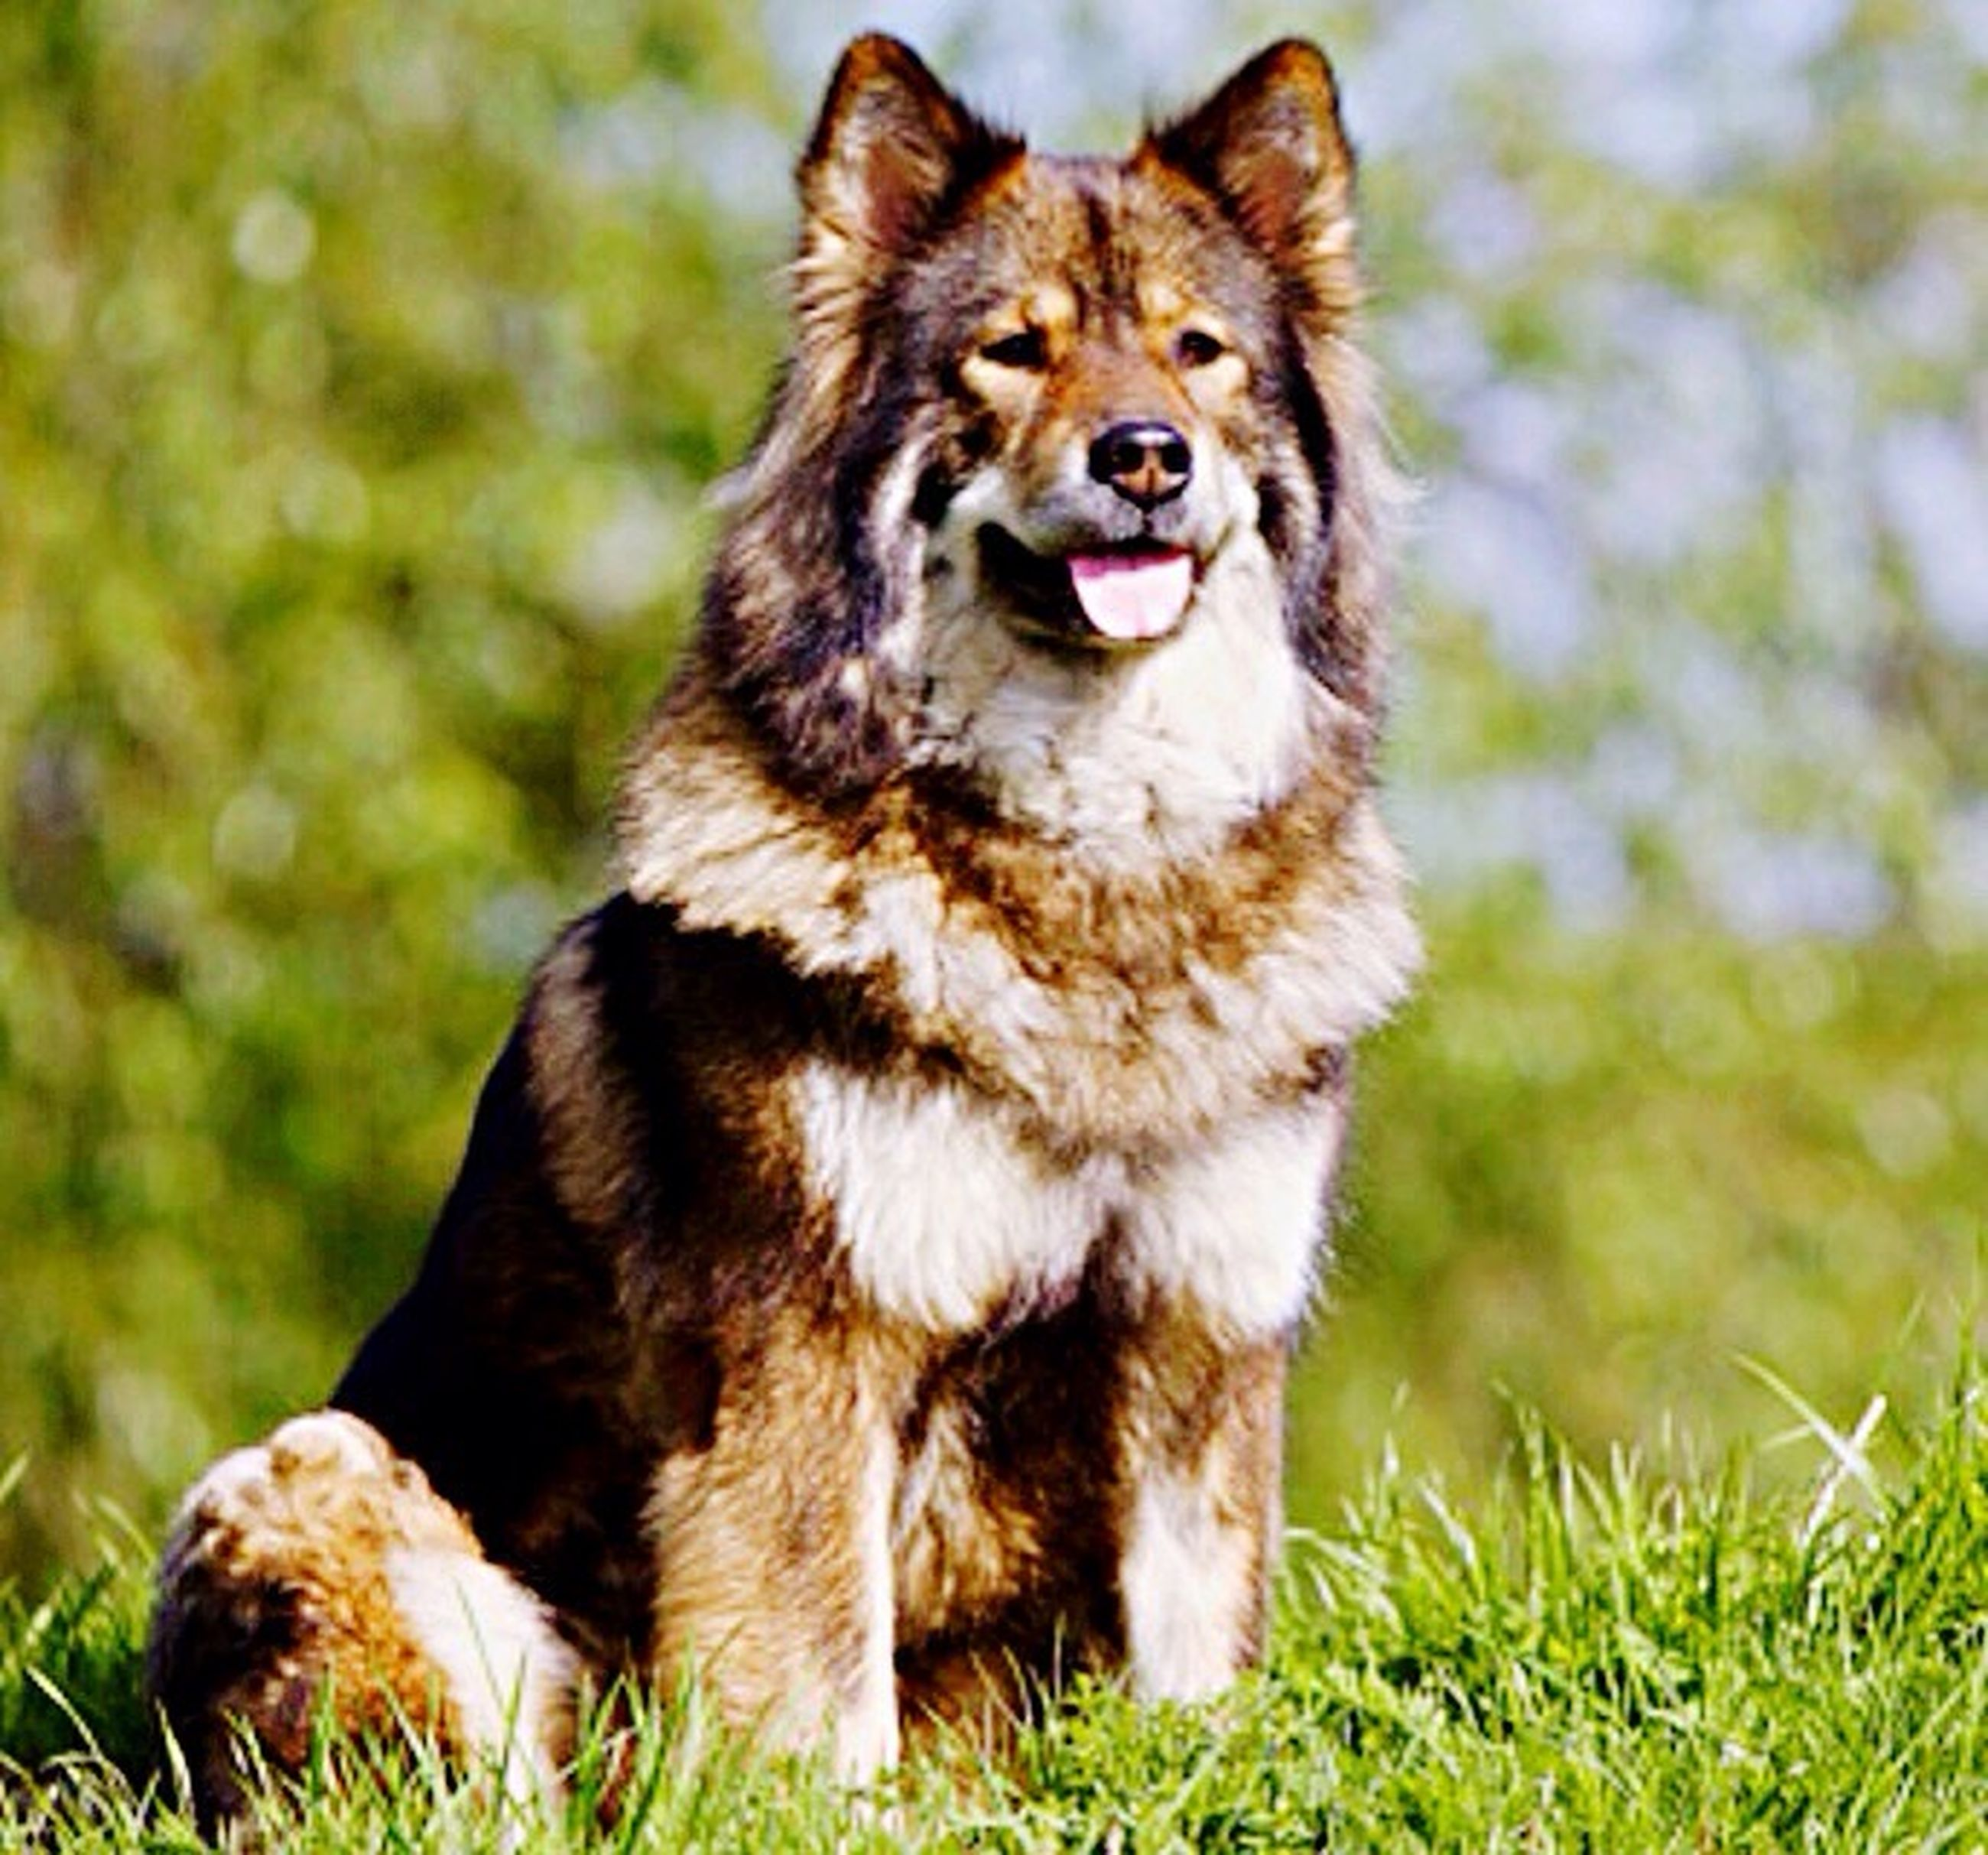 animal themes, one animal, mammal, domestic animals, portrait, grass, dog, looking at camera, pets, sitting, focus on foreground, field, front view, full length, outdoors, animal hair, sticking out tongue, mouth open, no people